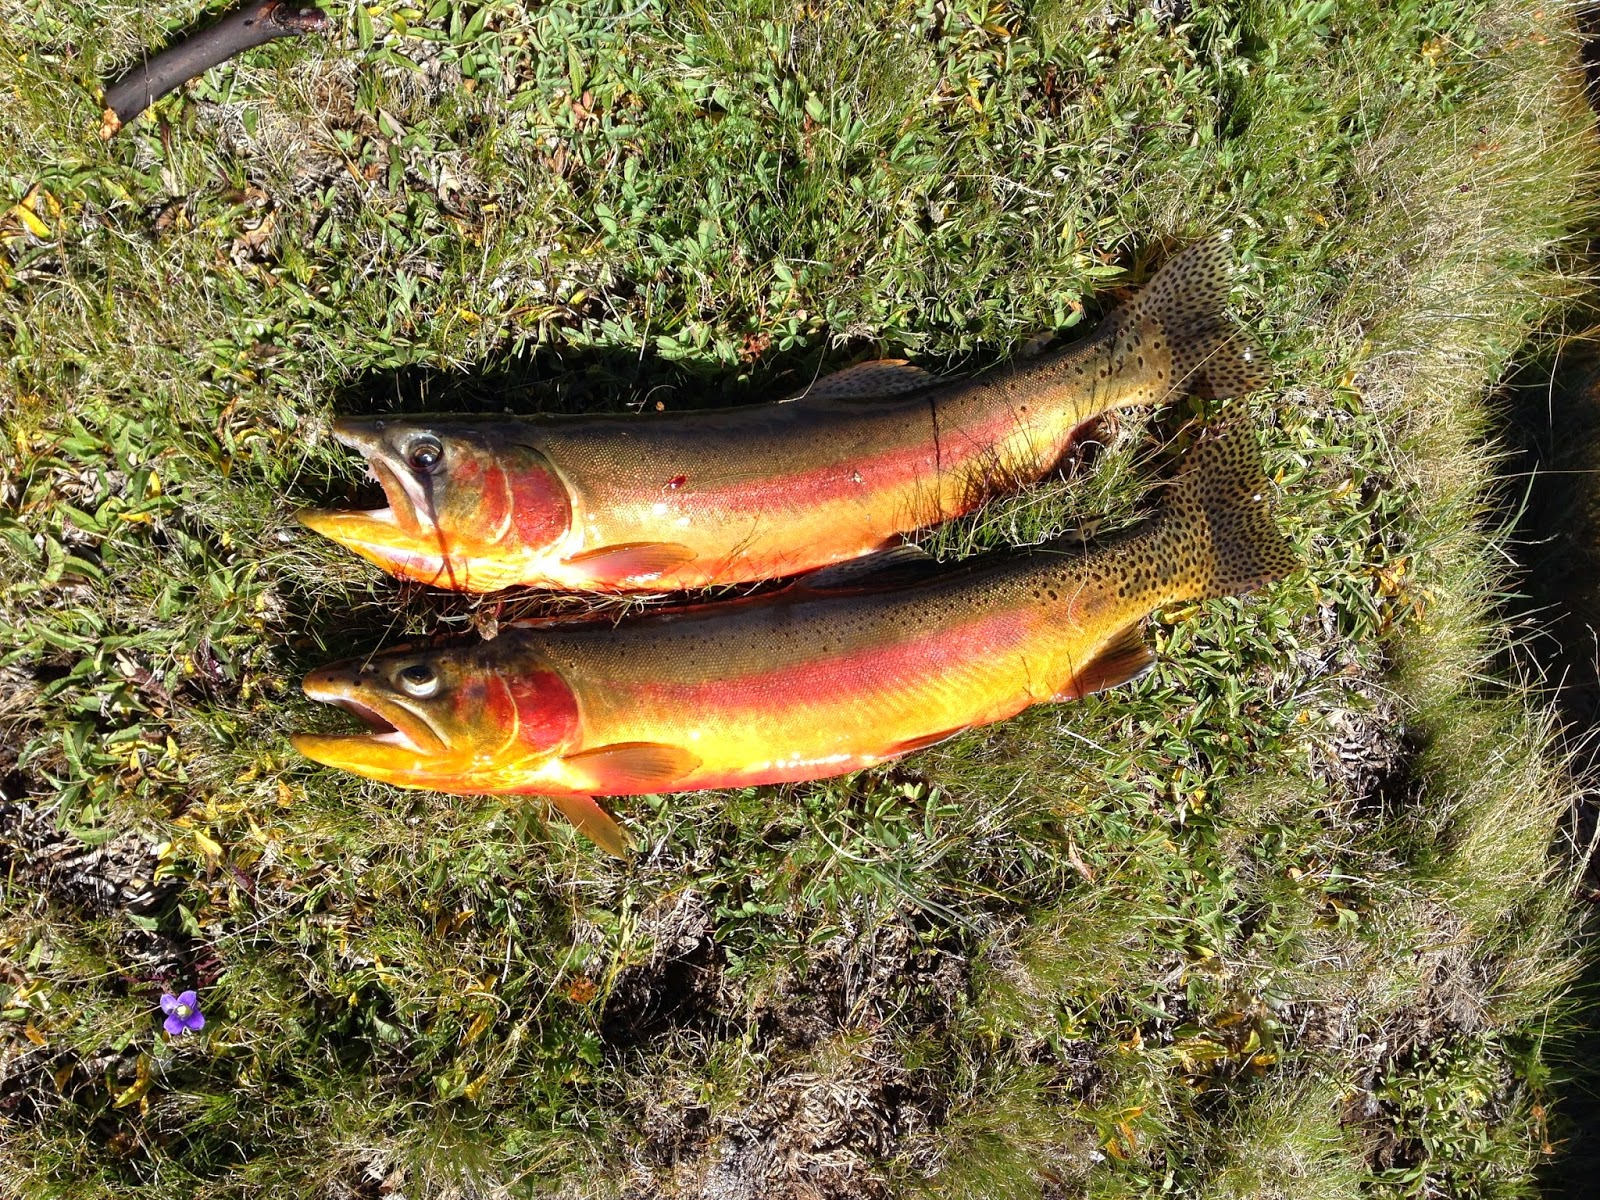 The fish sniffer golden trout 2014 southern sierras for The fish sniffer